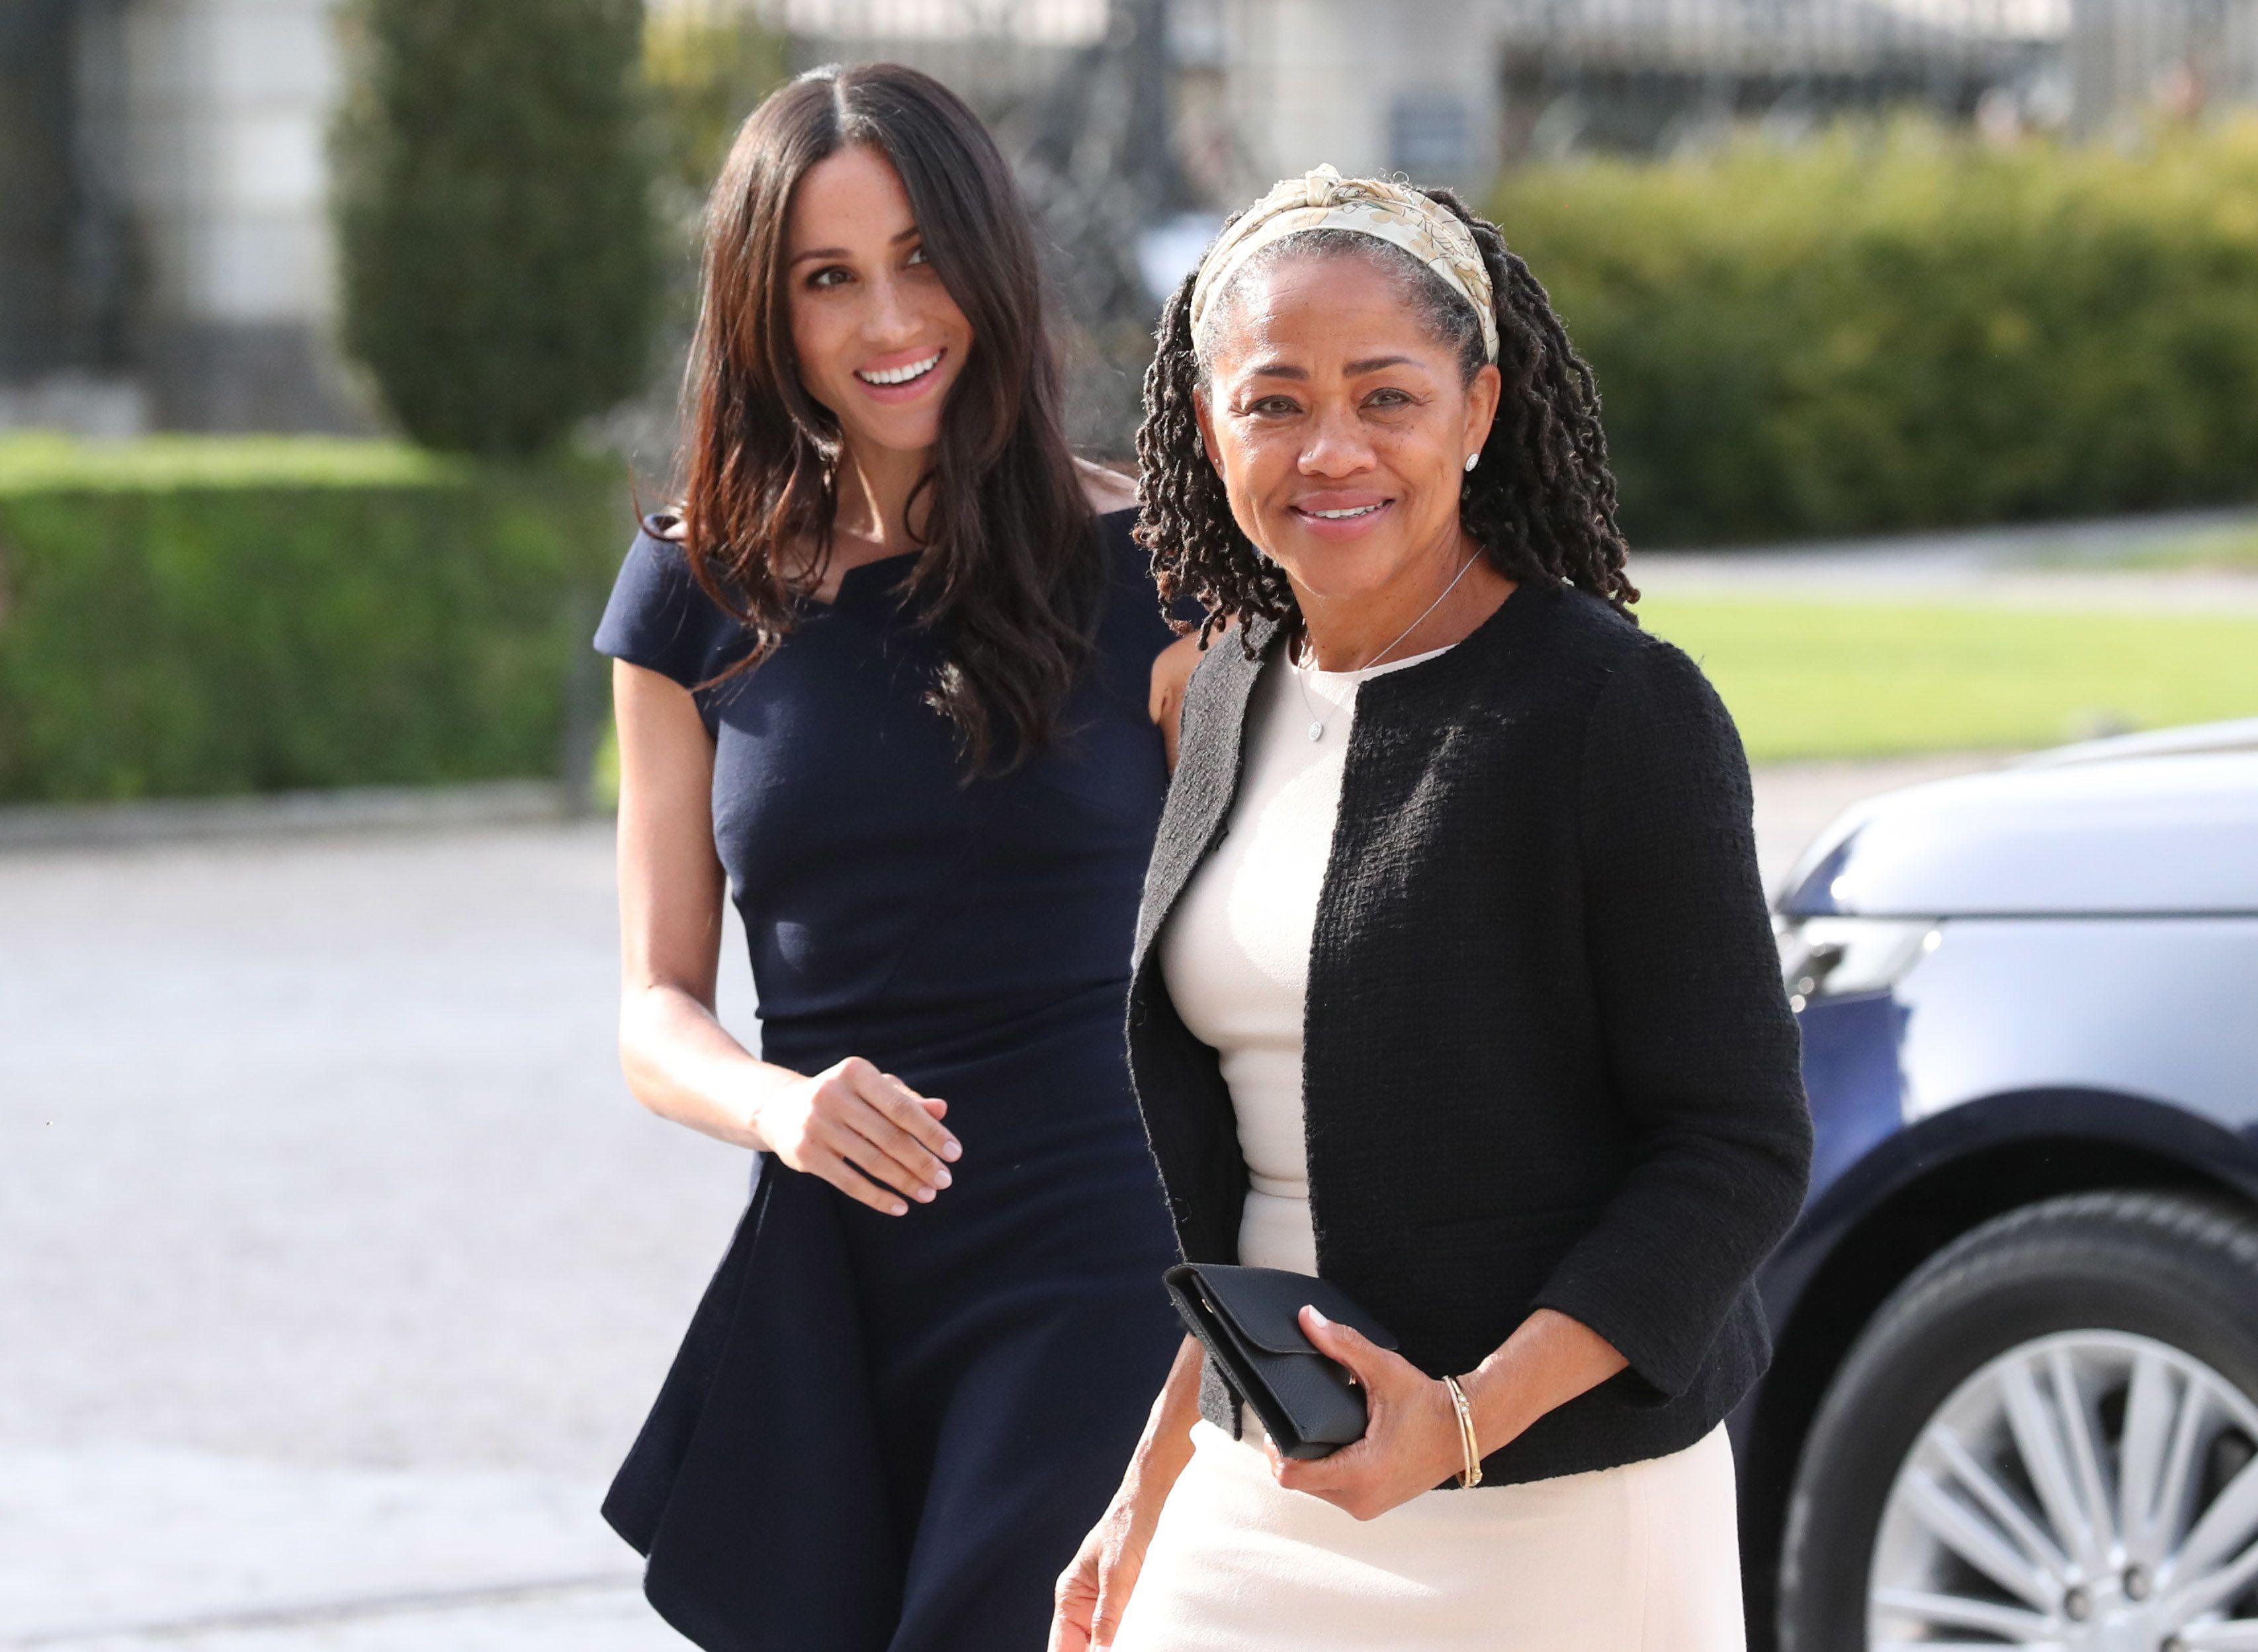 Meghan Markle and her mother, Doria Ragland, arrive at the National Trust's Cliveden Estate the night before the royal wedding on May 18. Ragland was on hand this week for the Duchess of Sussex's first hosting event as a royal.